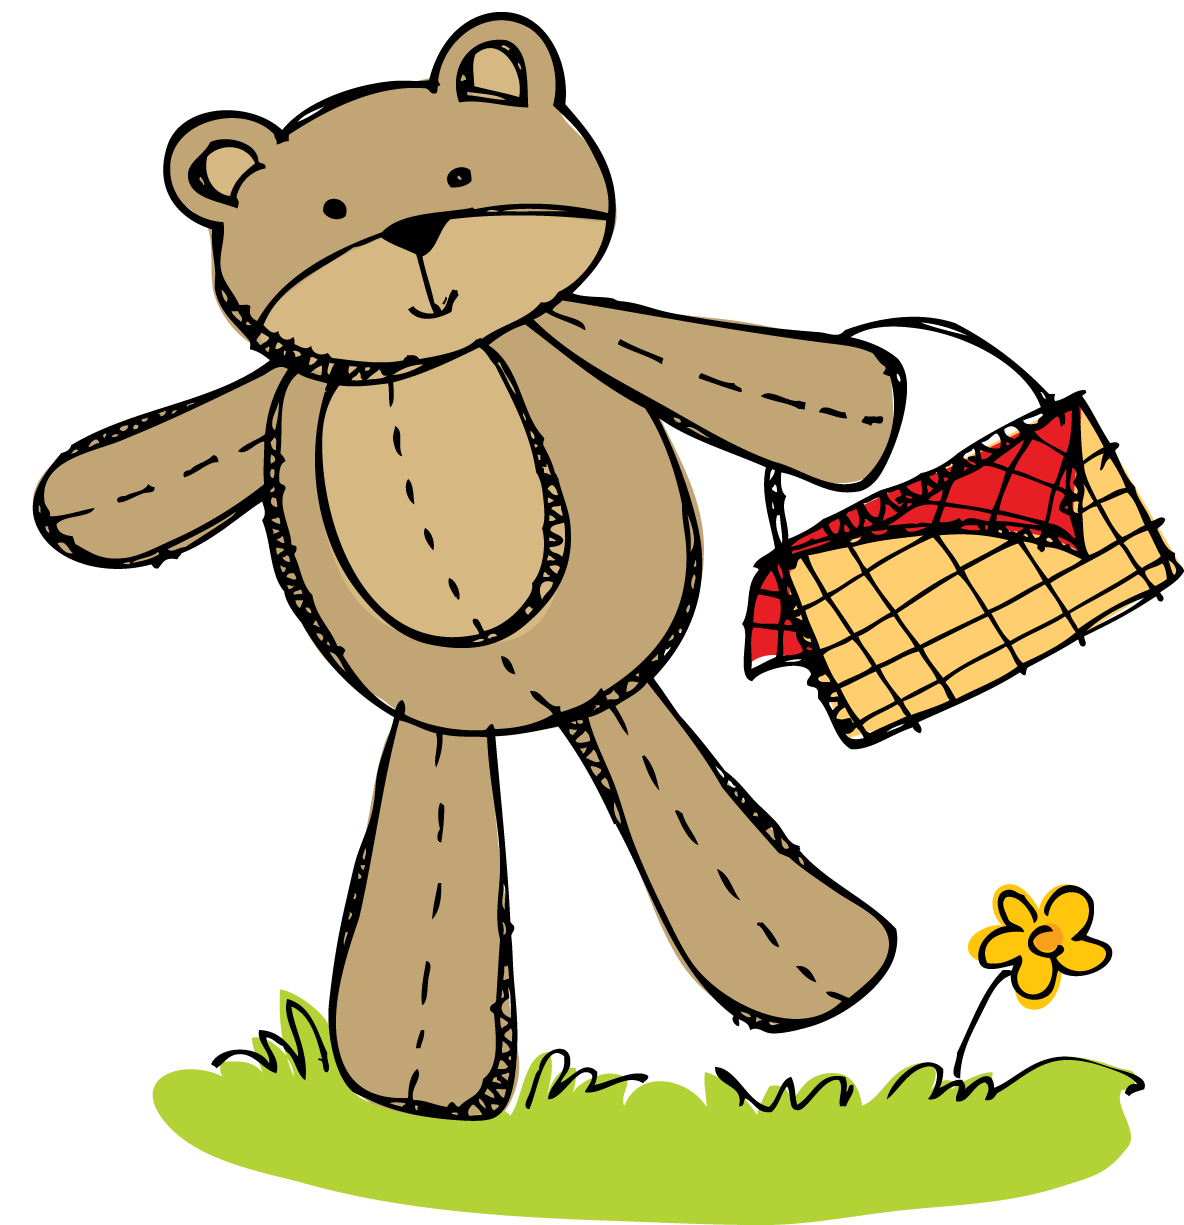 Win clipart spring. Picnic images free download